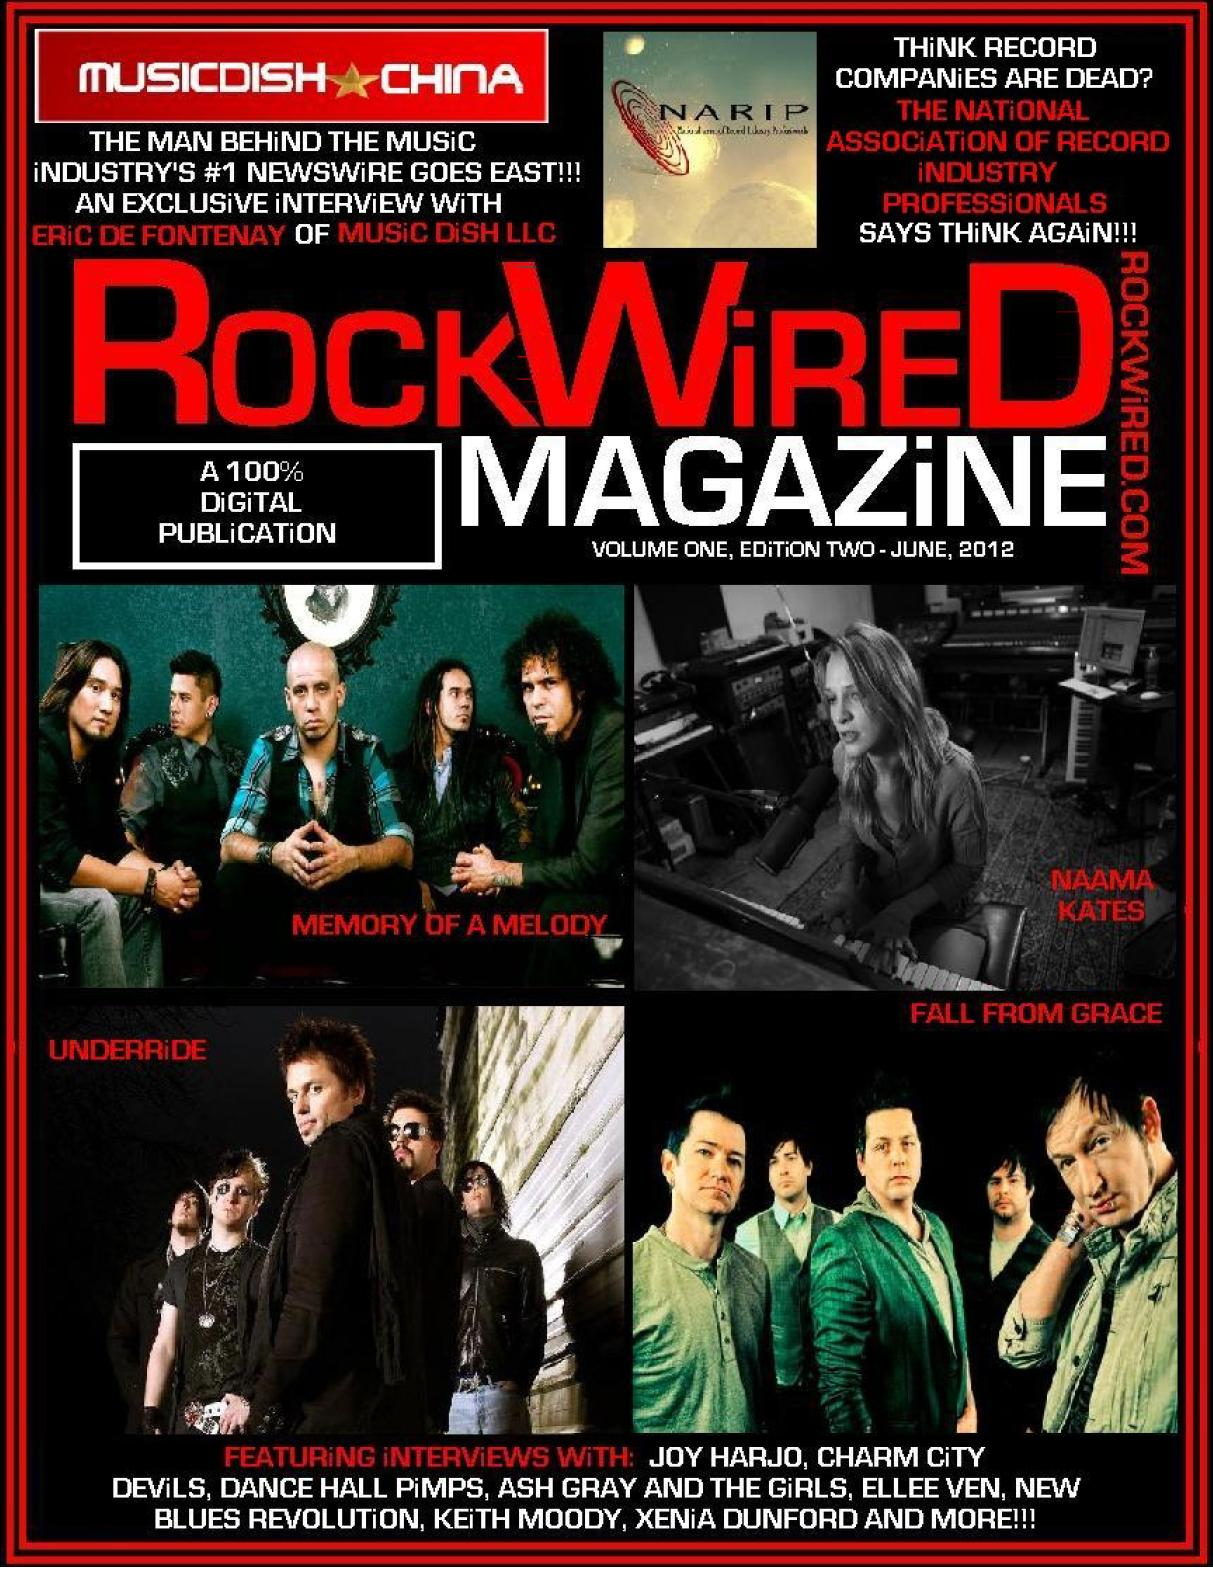 http://www.rockwired.com/junecover.JPG